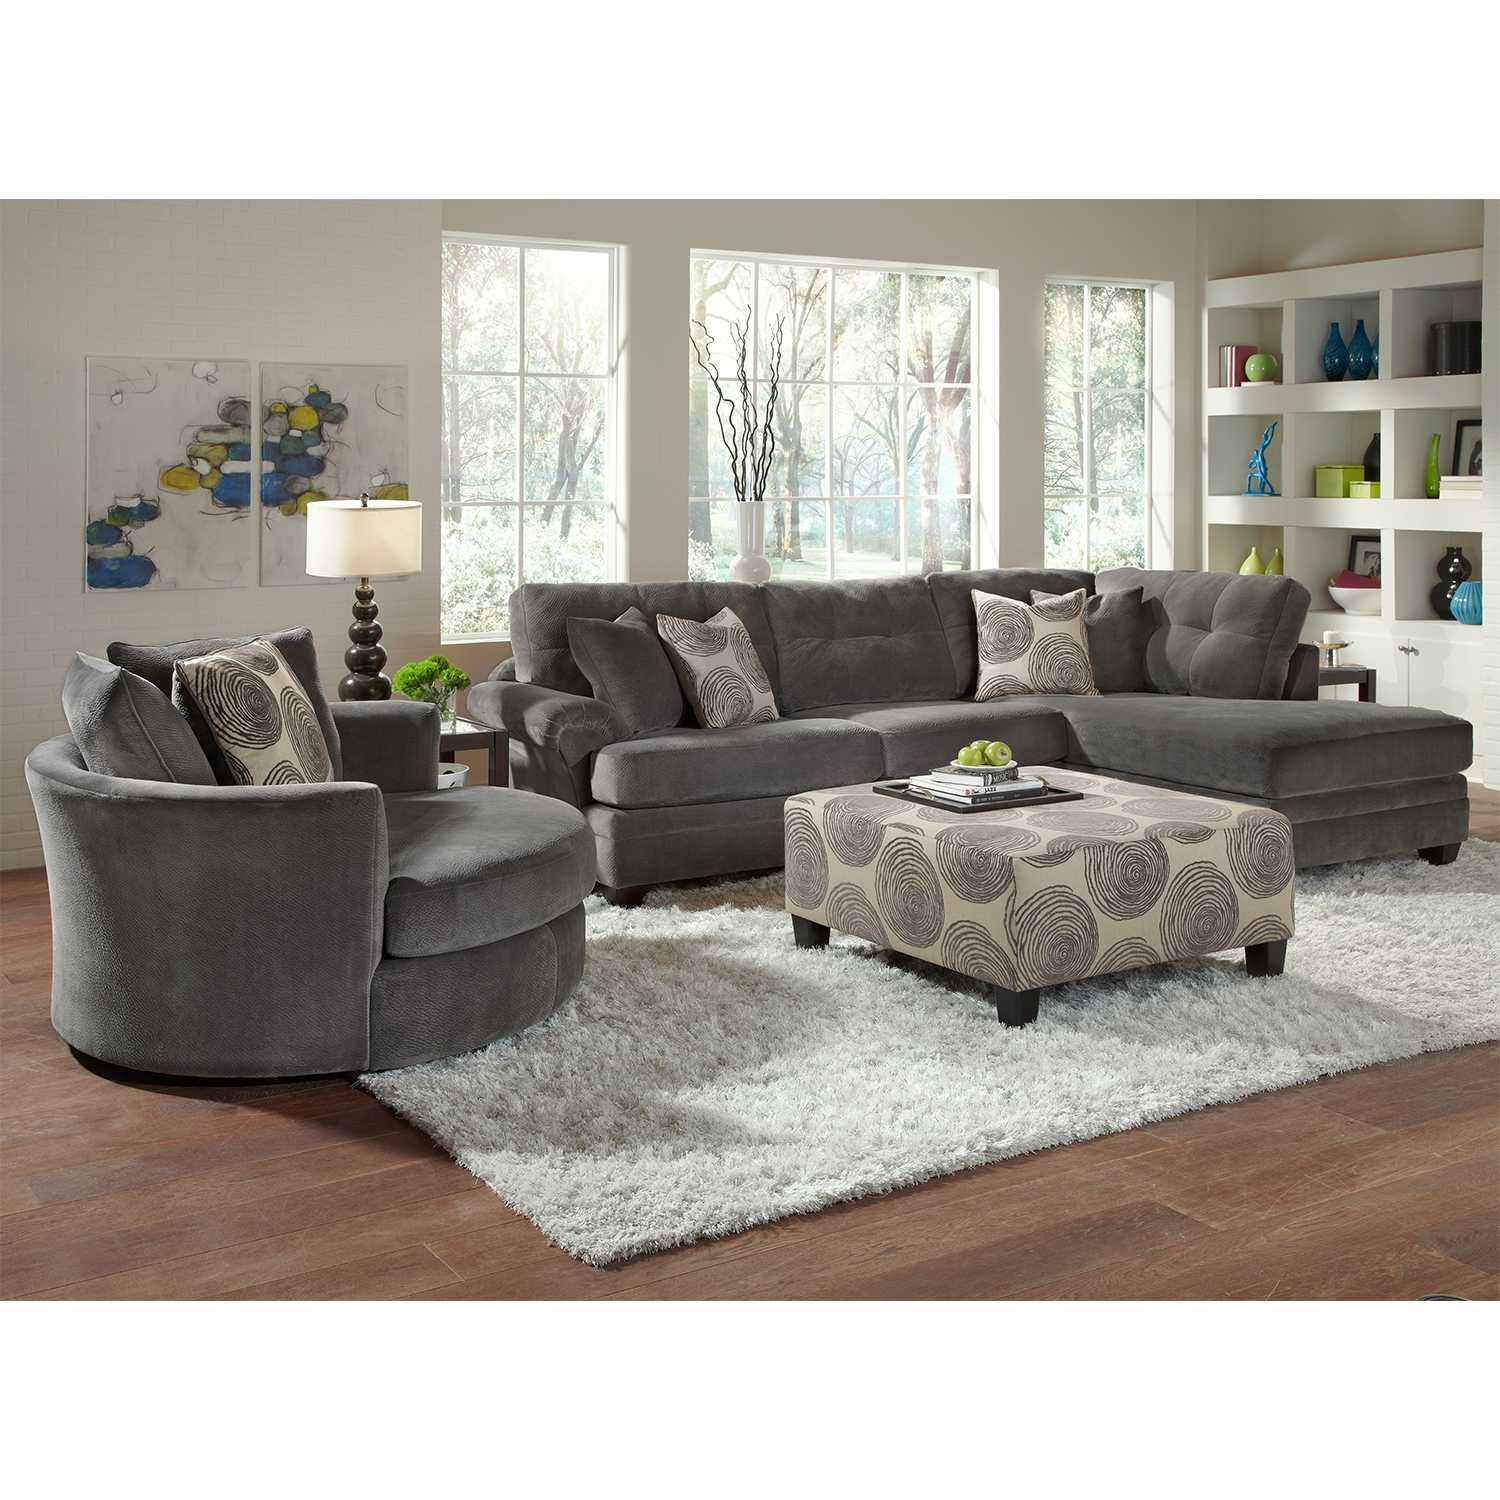 Rooms Go Living Room Furniture Trends Including Outstanding